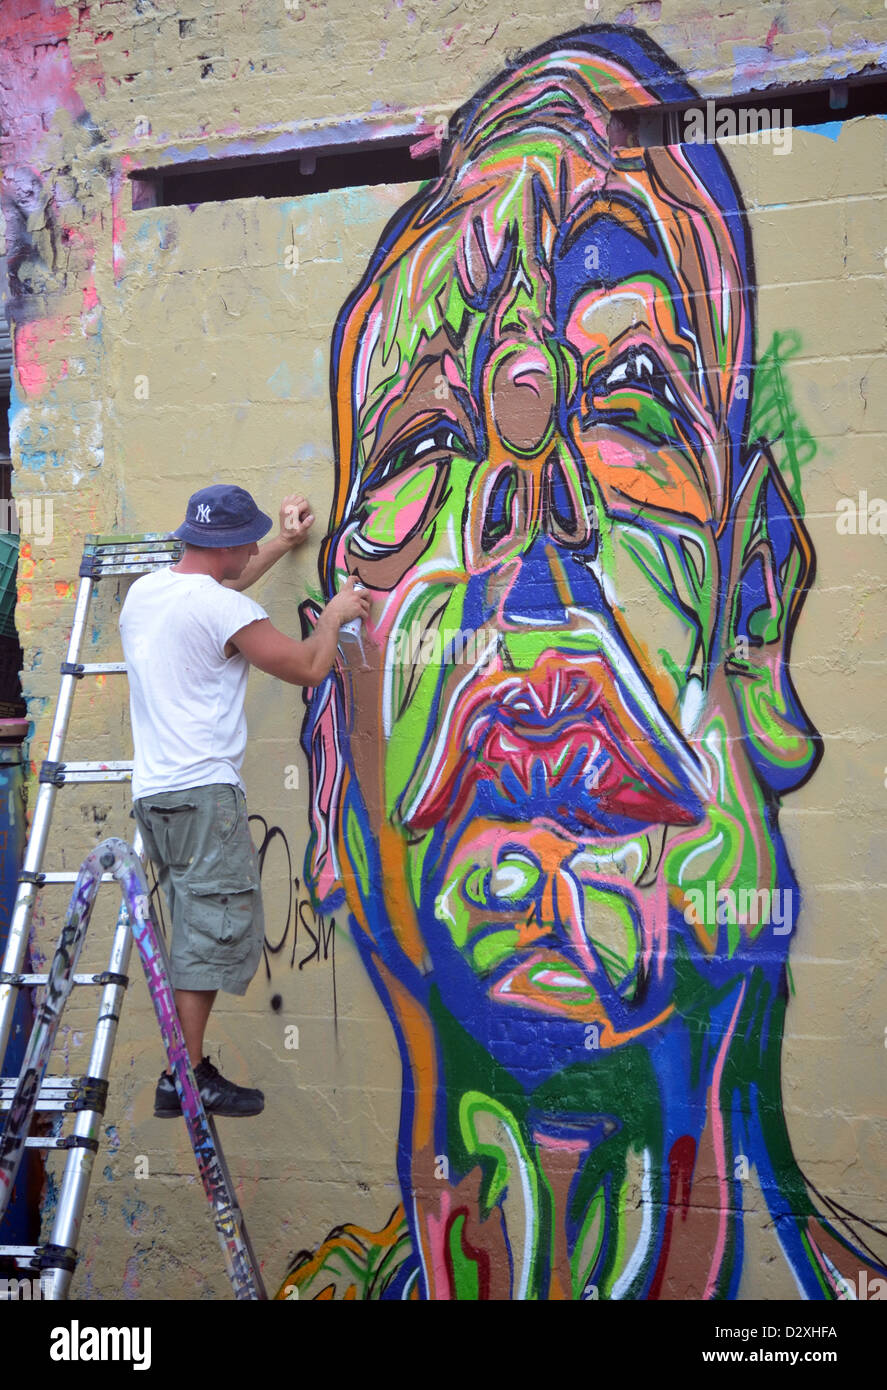 Graffiti wall in queens ny - Graffiti Artist Painting At 5 Pointz In Long Island City Queens New York